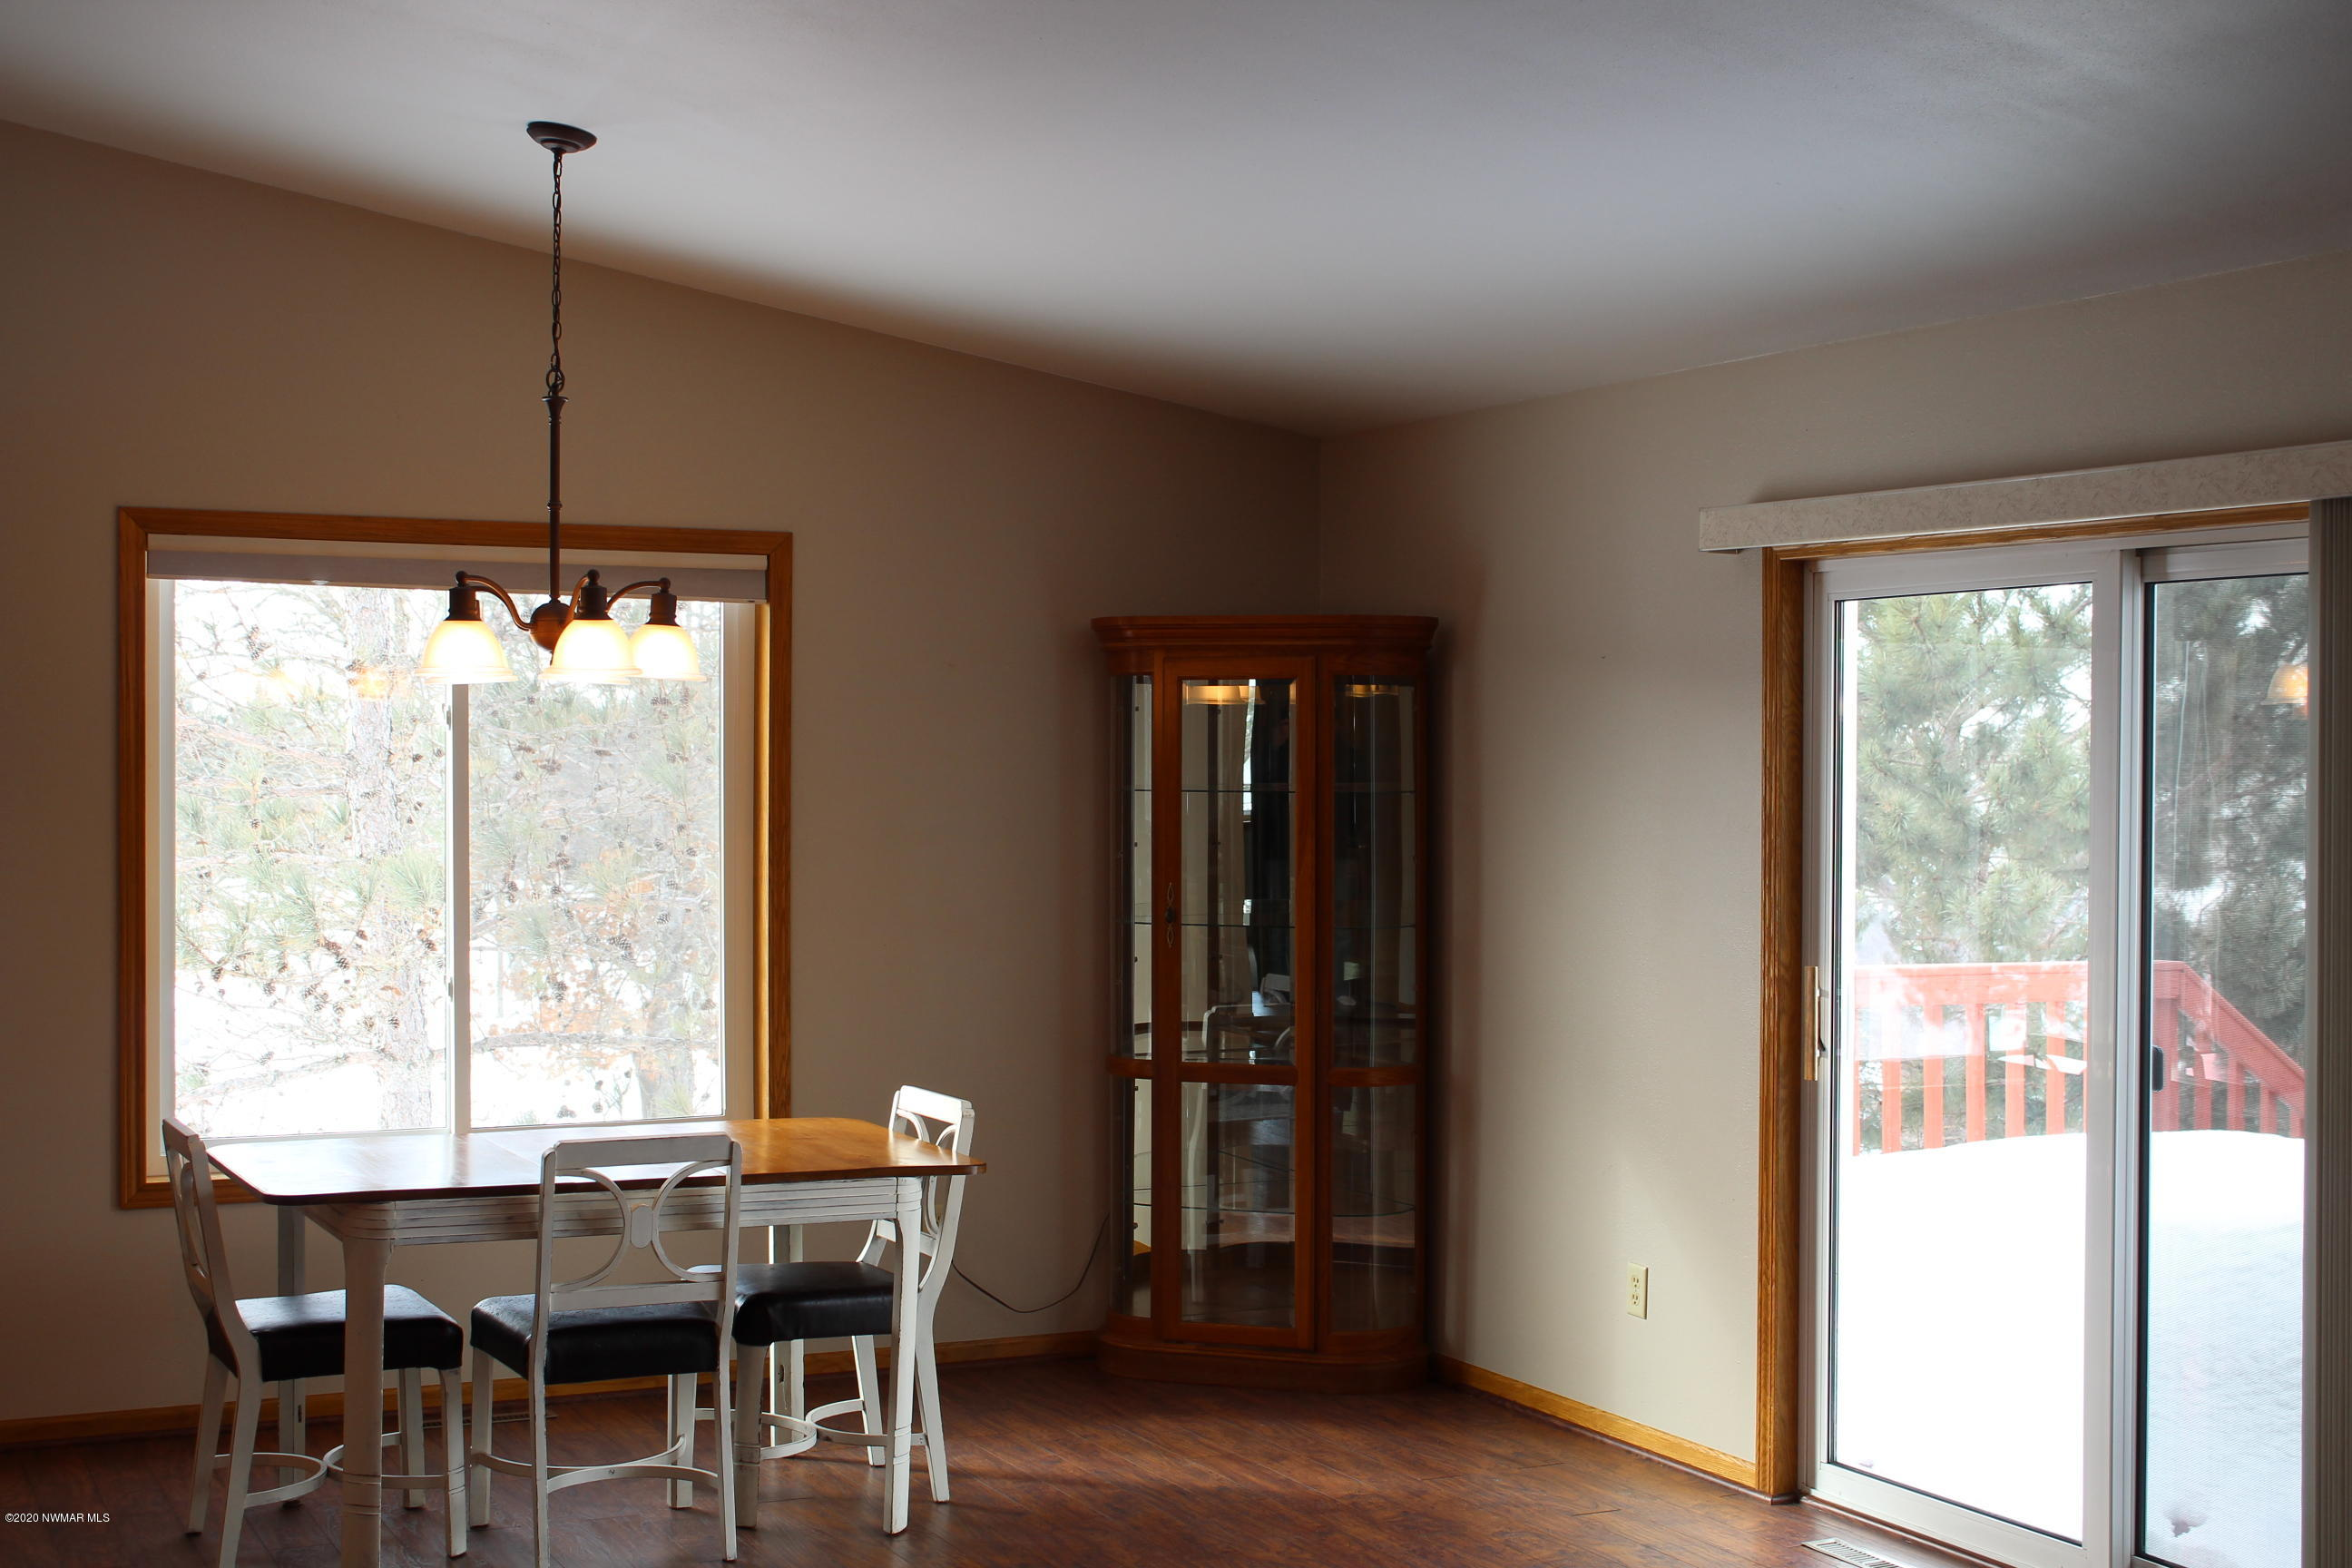 Dining and Deck access through the Patio doors.